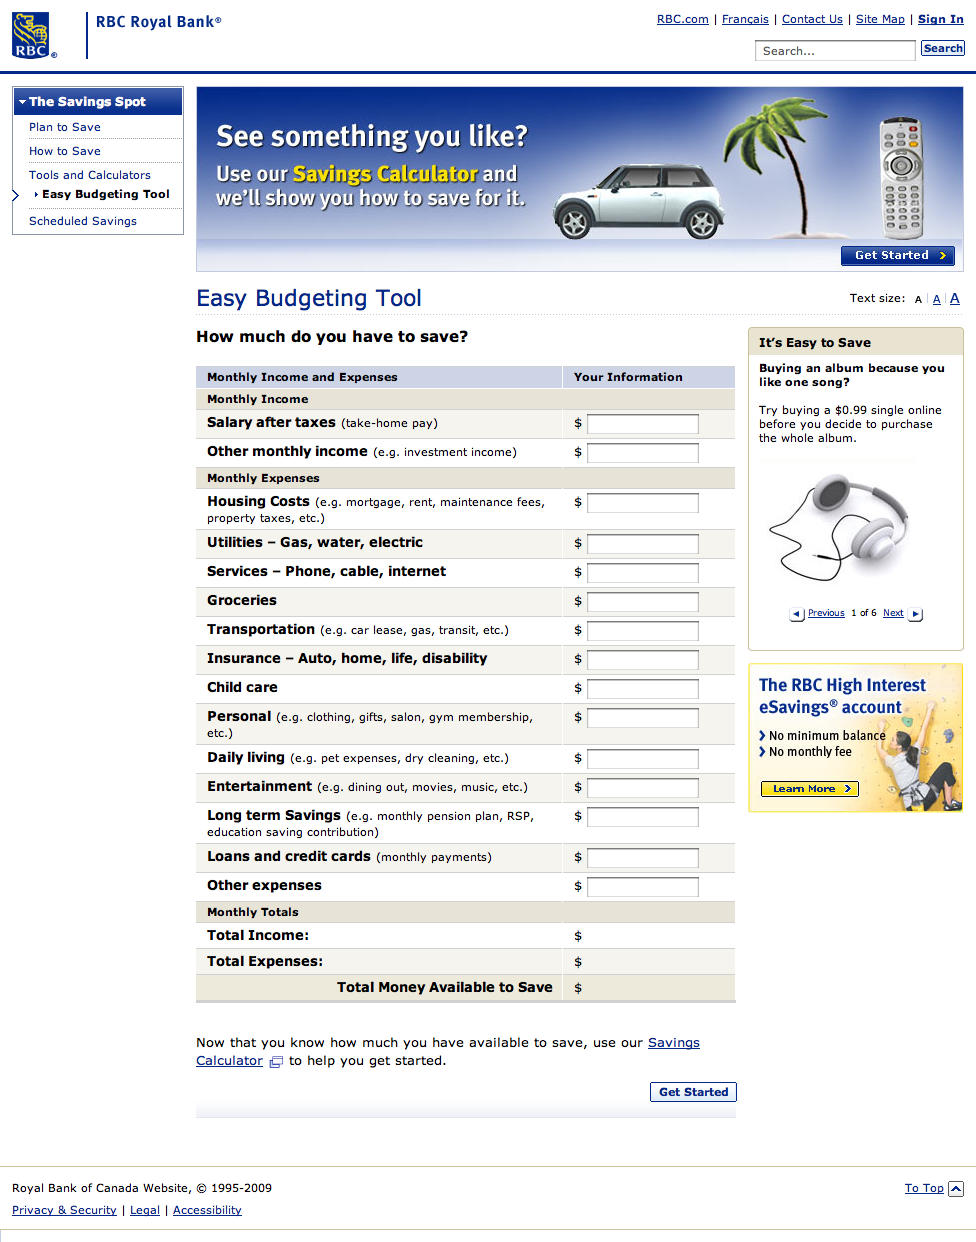 Easy Budgeting Tool - The Savings Spot - RBC Royal Bank (20090117).png